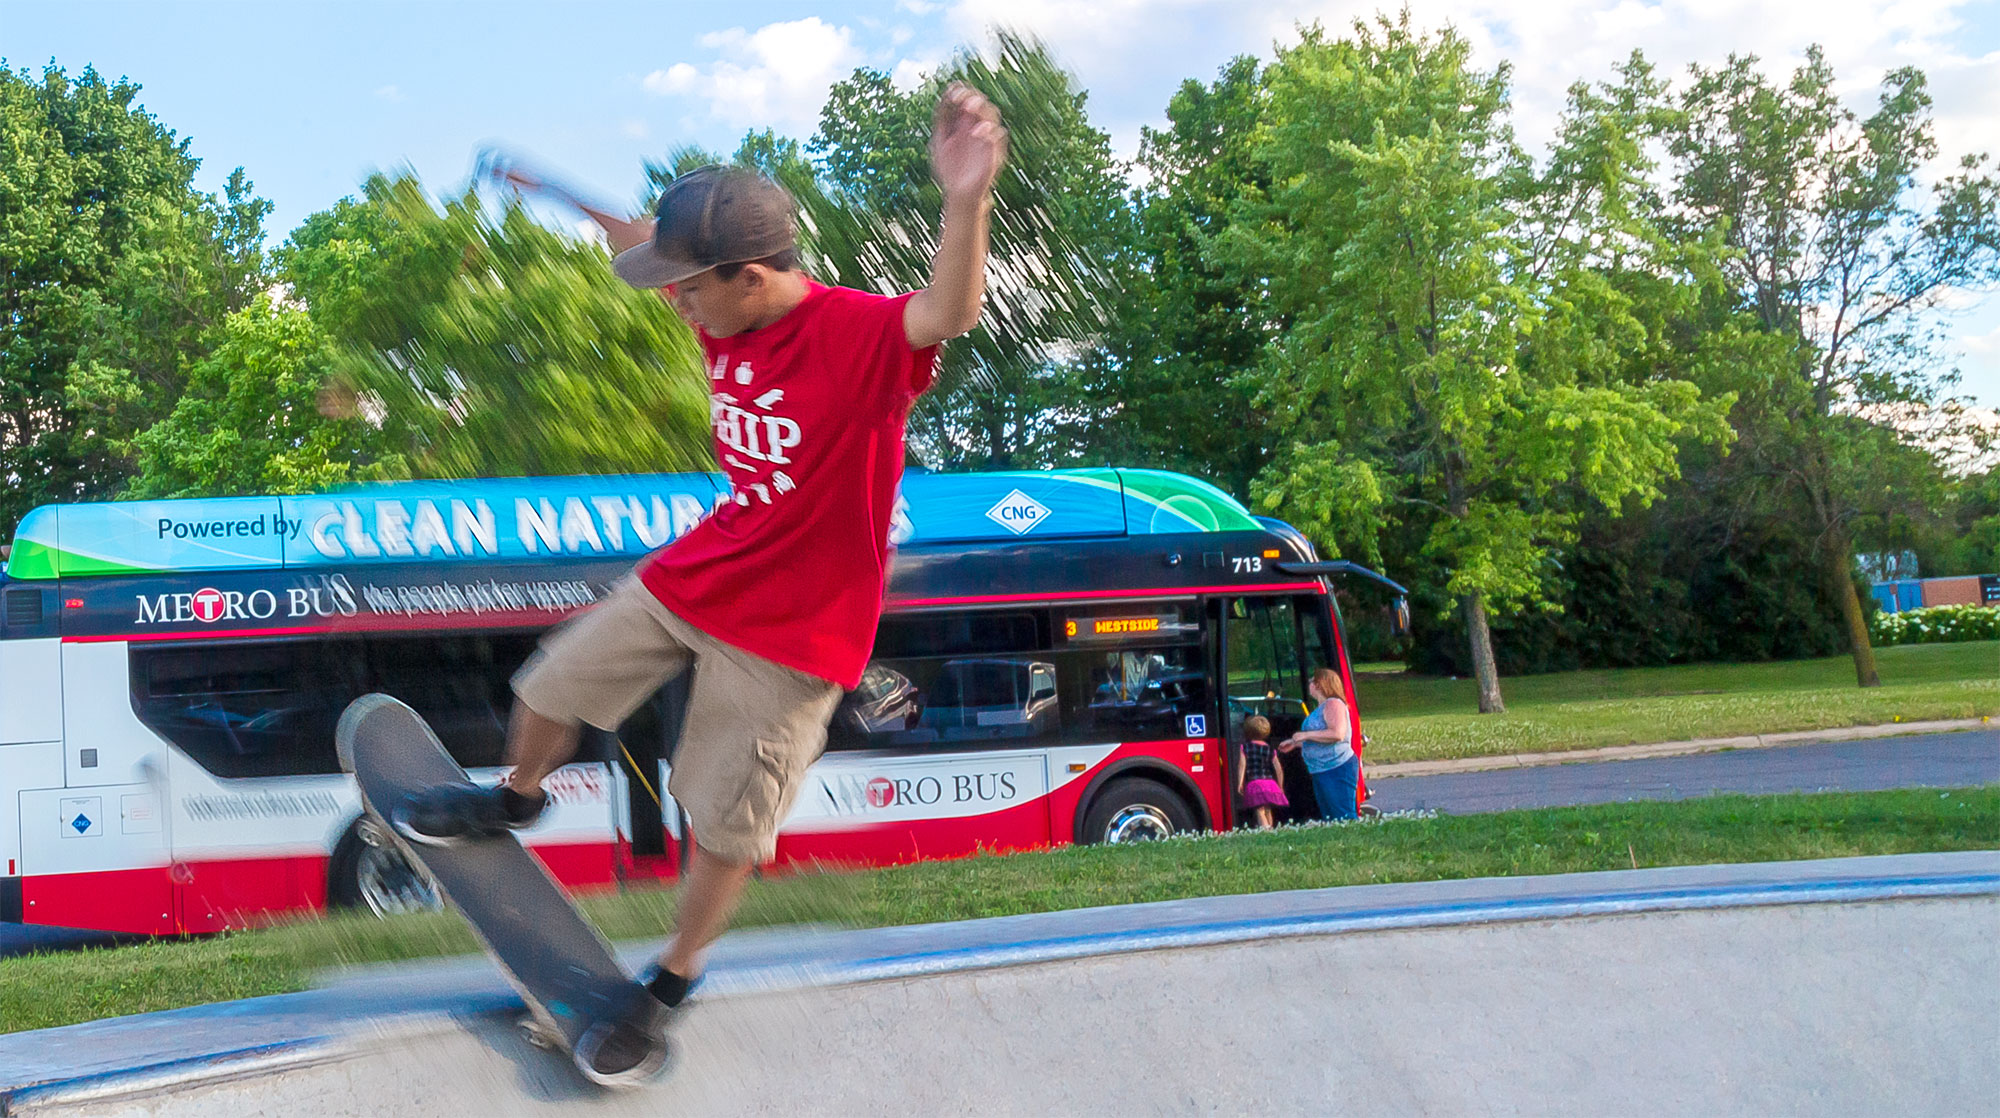 IMAGE: Metro Bus at Skate Park